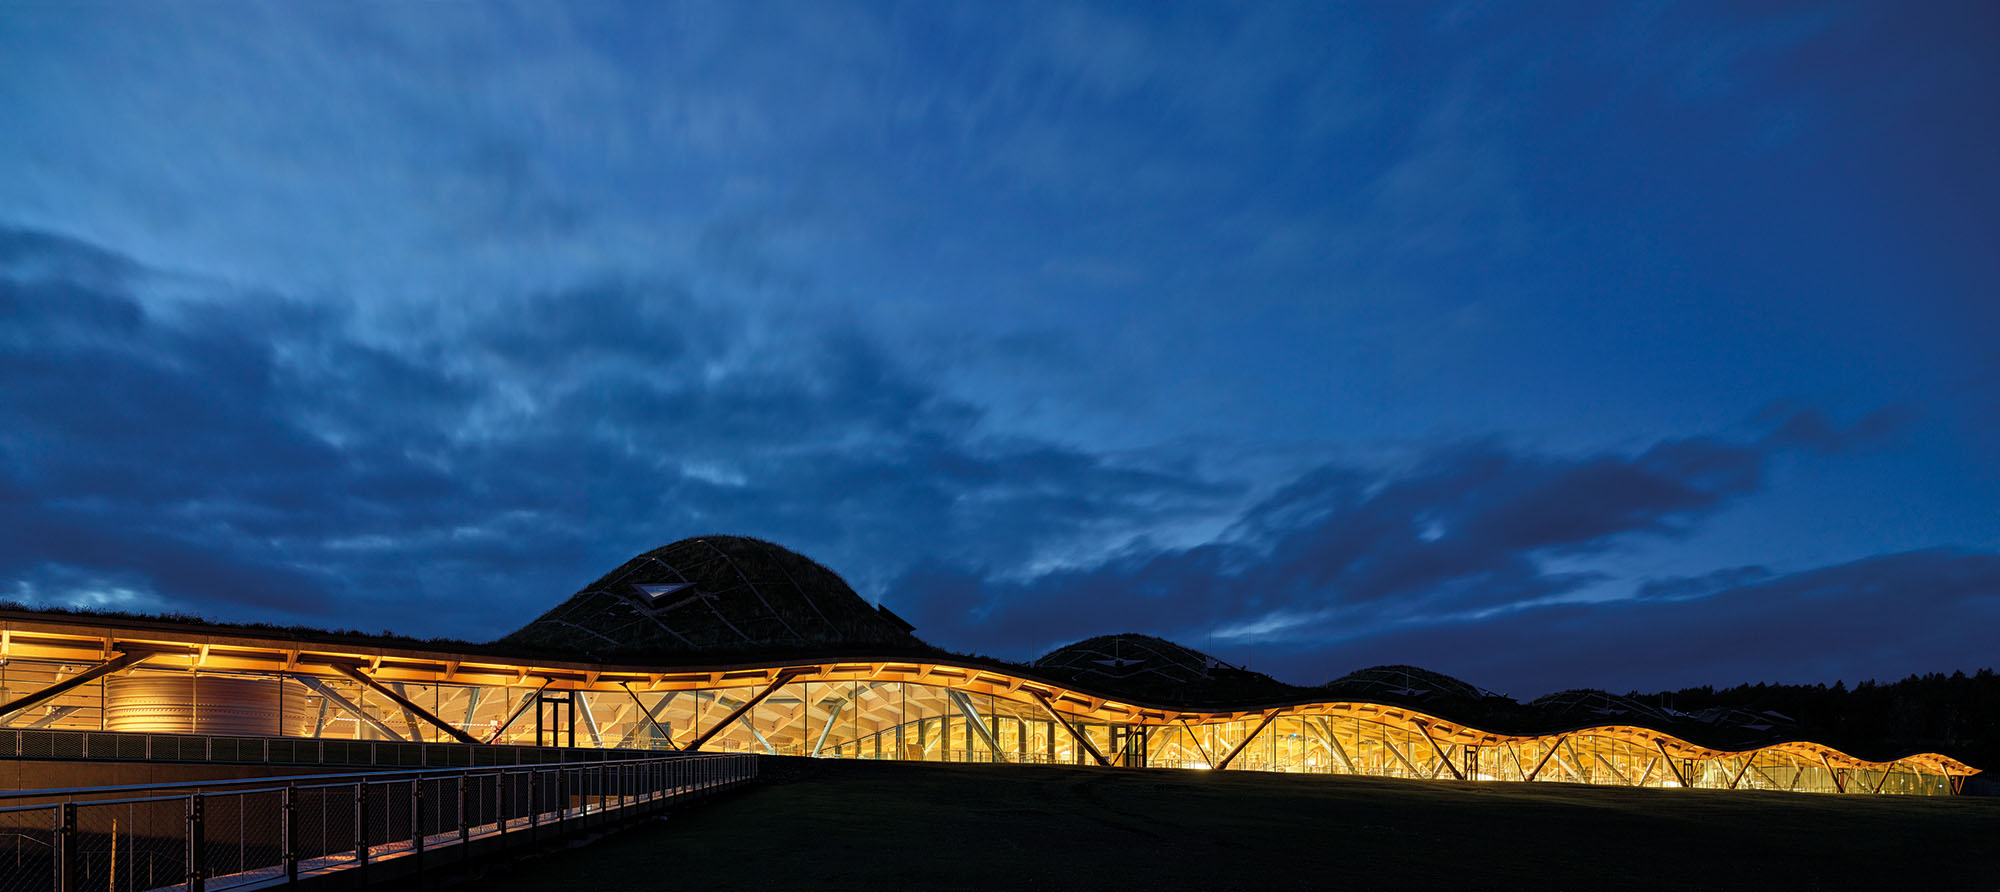 The Macallan distillery - image by Mark Power